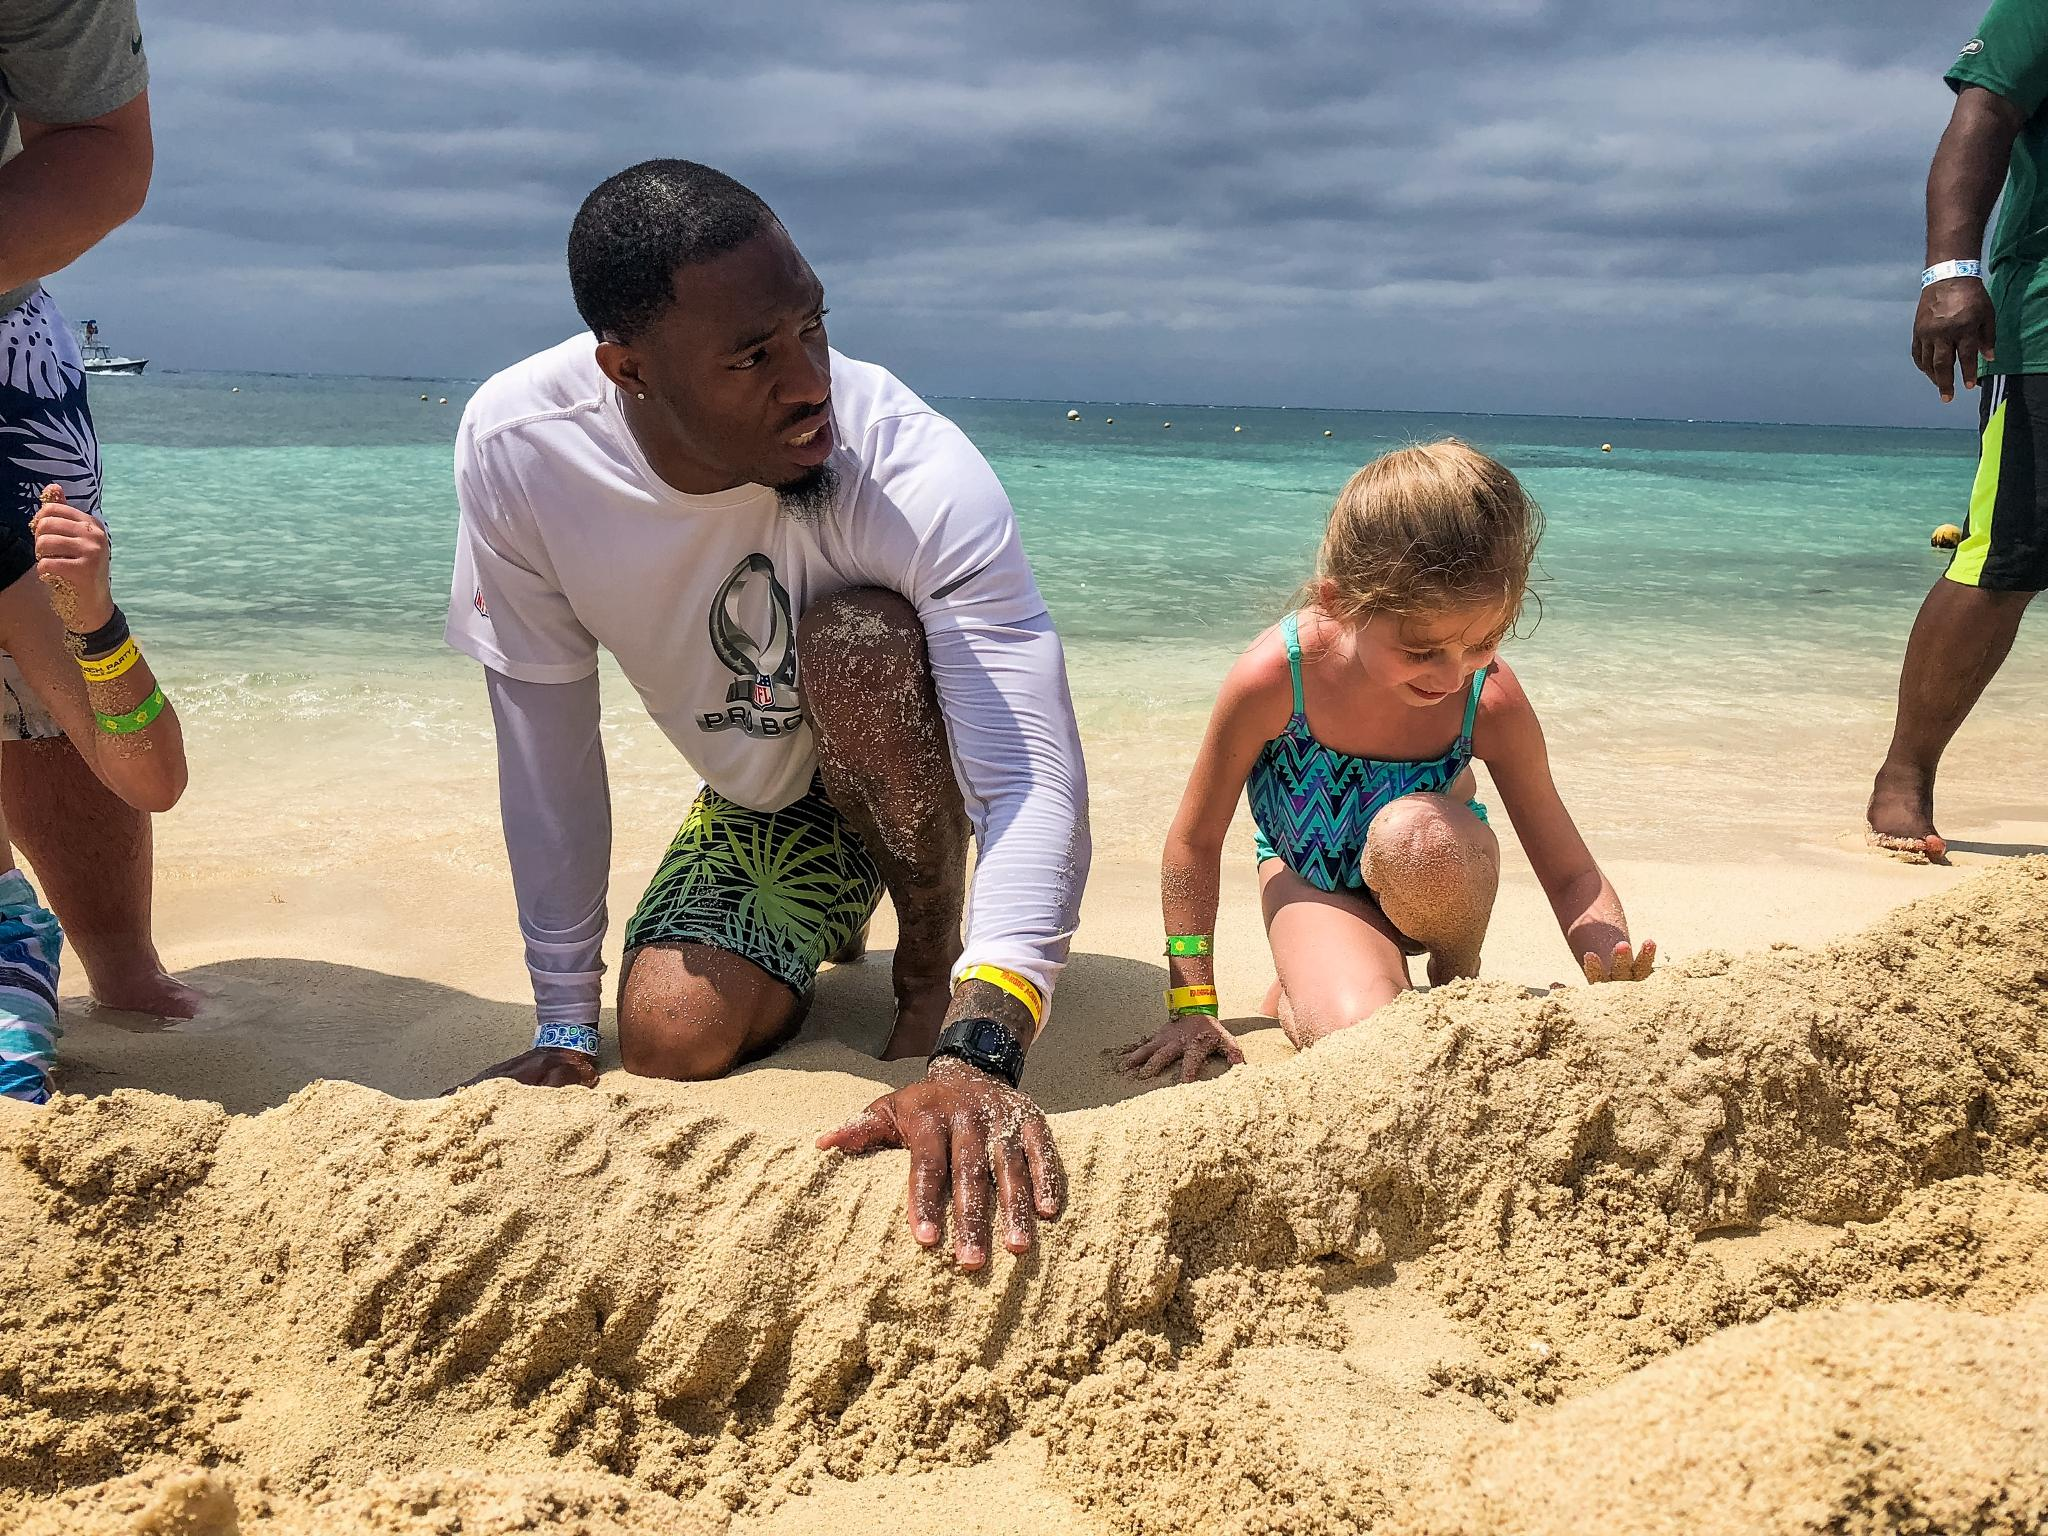 The #PackersCruise stops in Cozumel for a beach party & some competition in the sand! ��️  ��: https://t.co/icjvA3uvxA https://t.co/P6nGZr2TuR